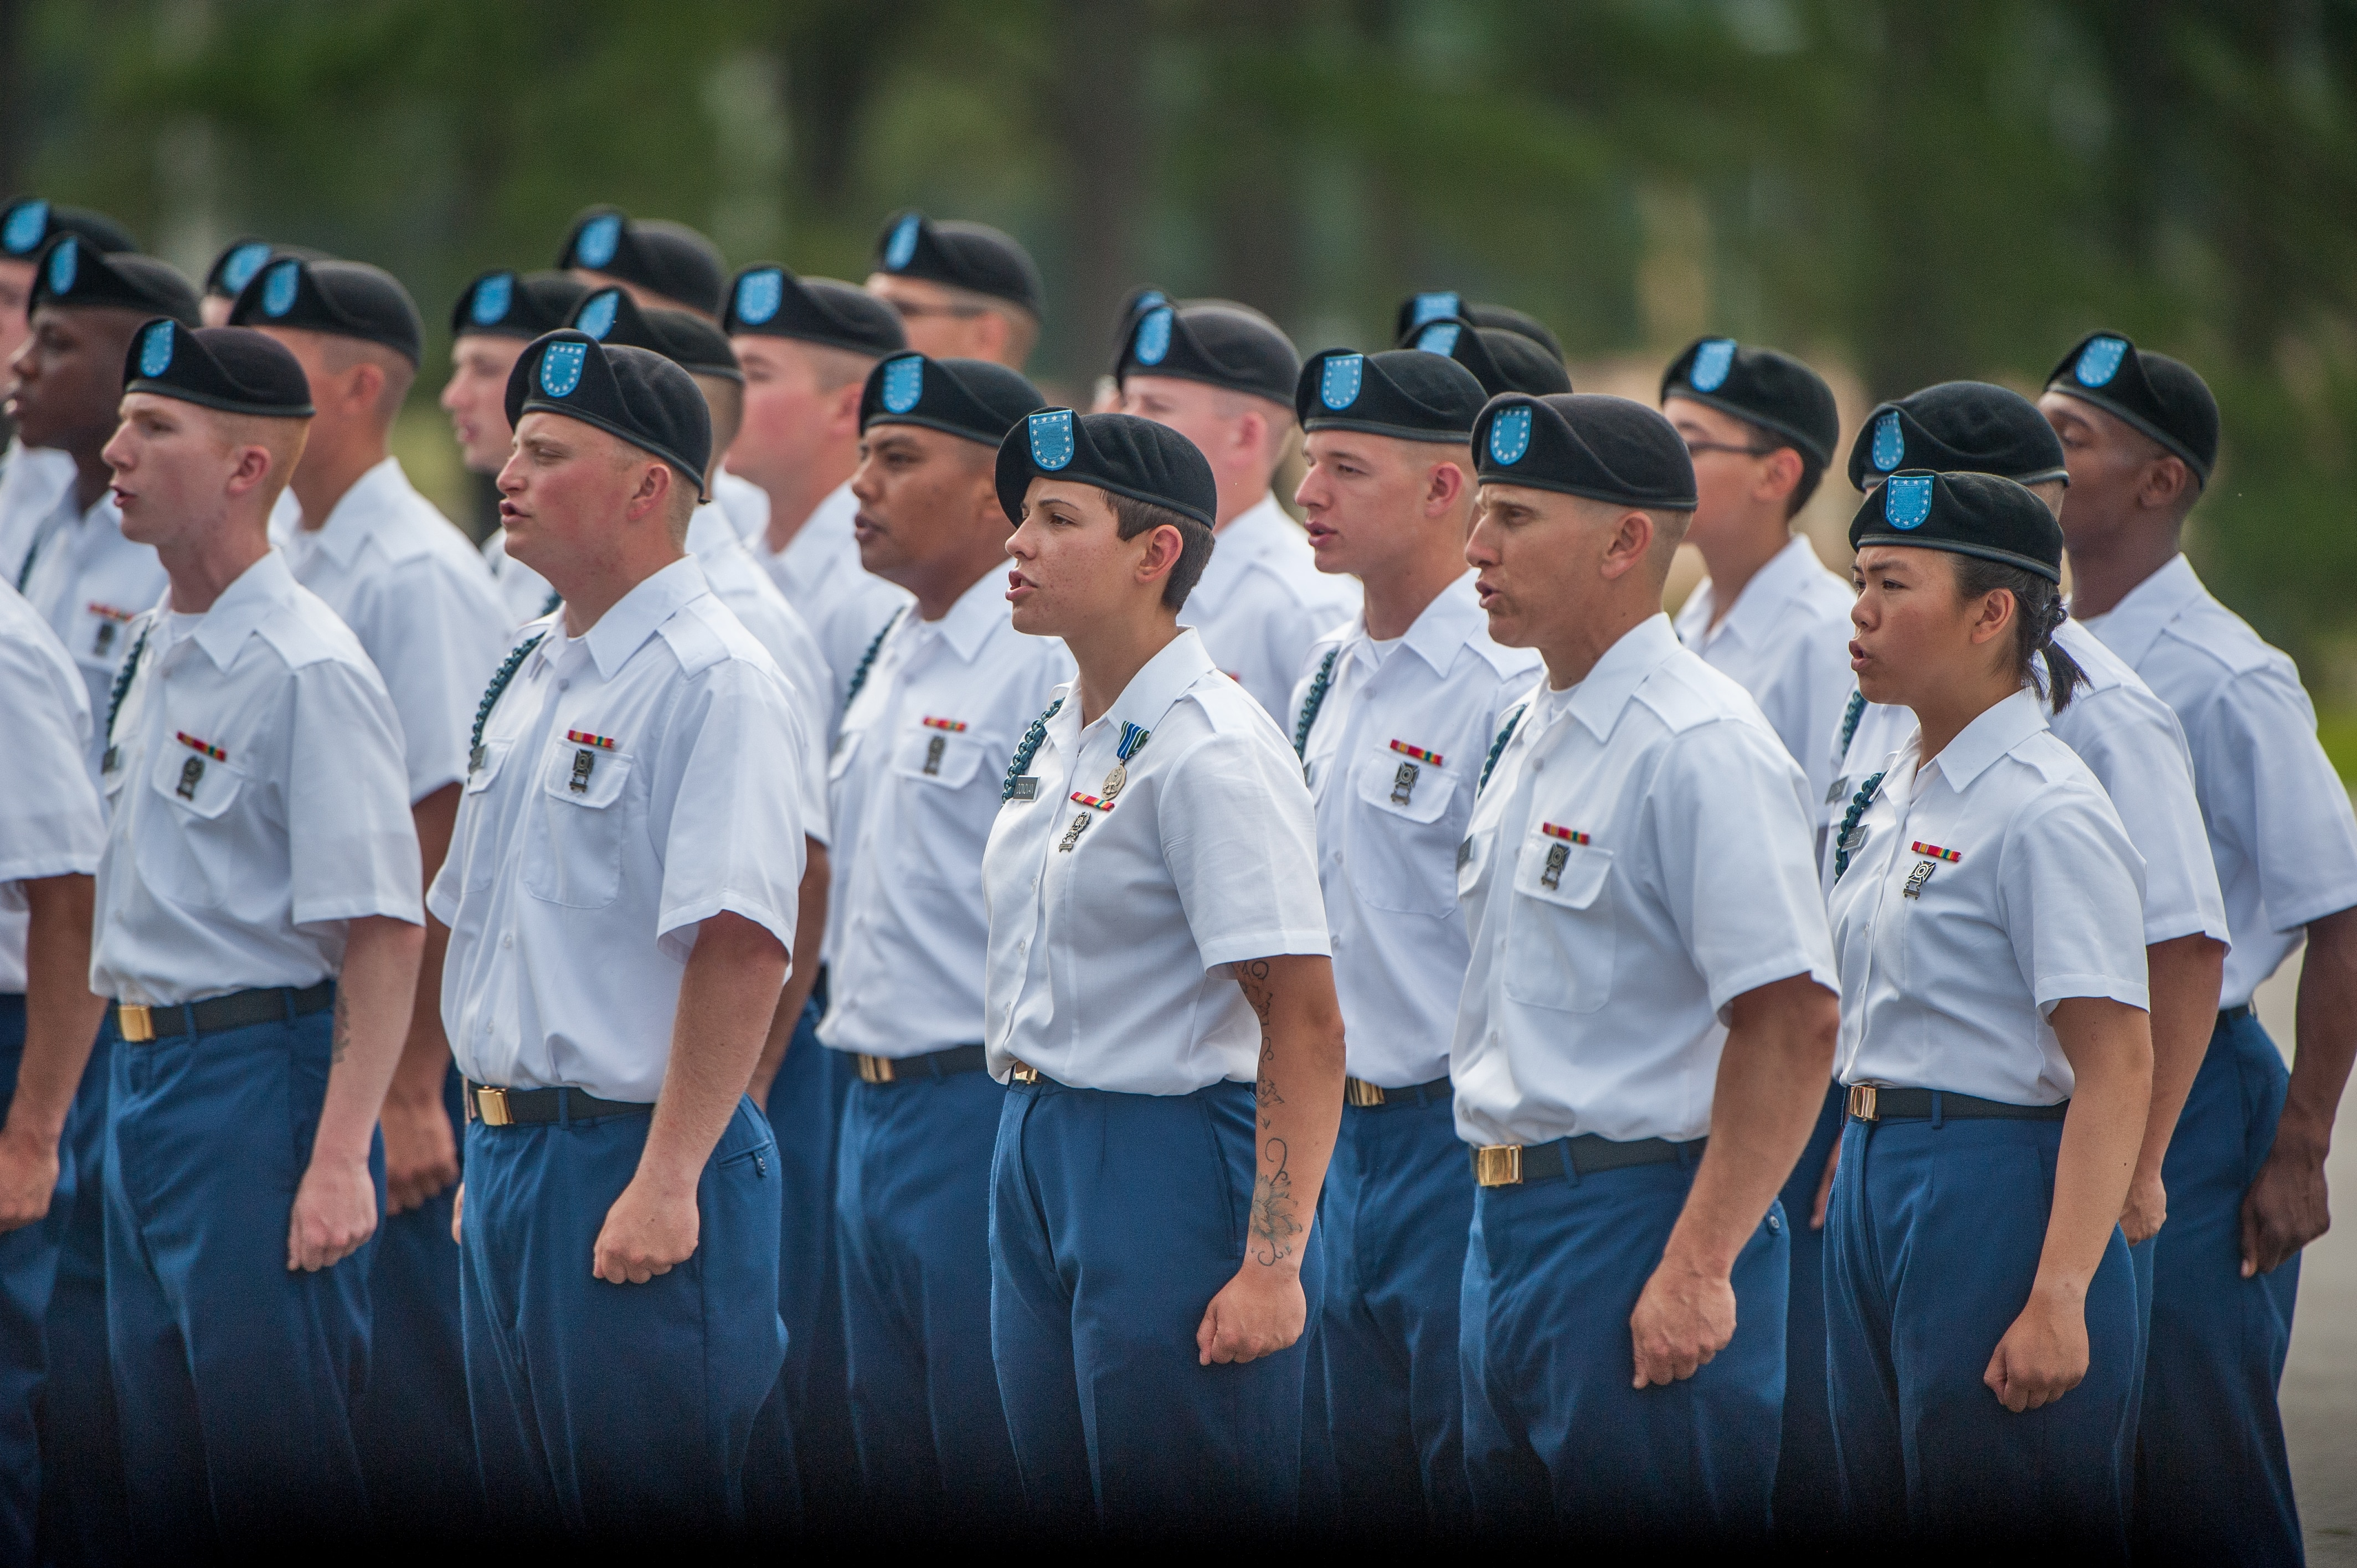 18 women graduate from the Army's first gender-integrated infantry basic training